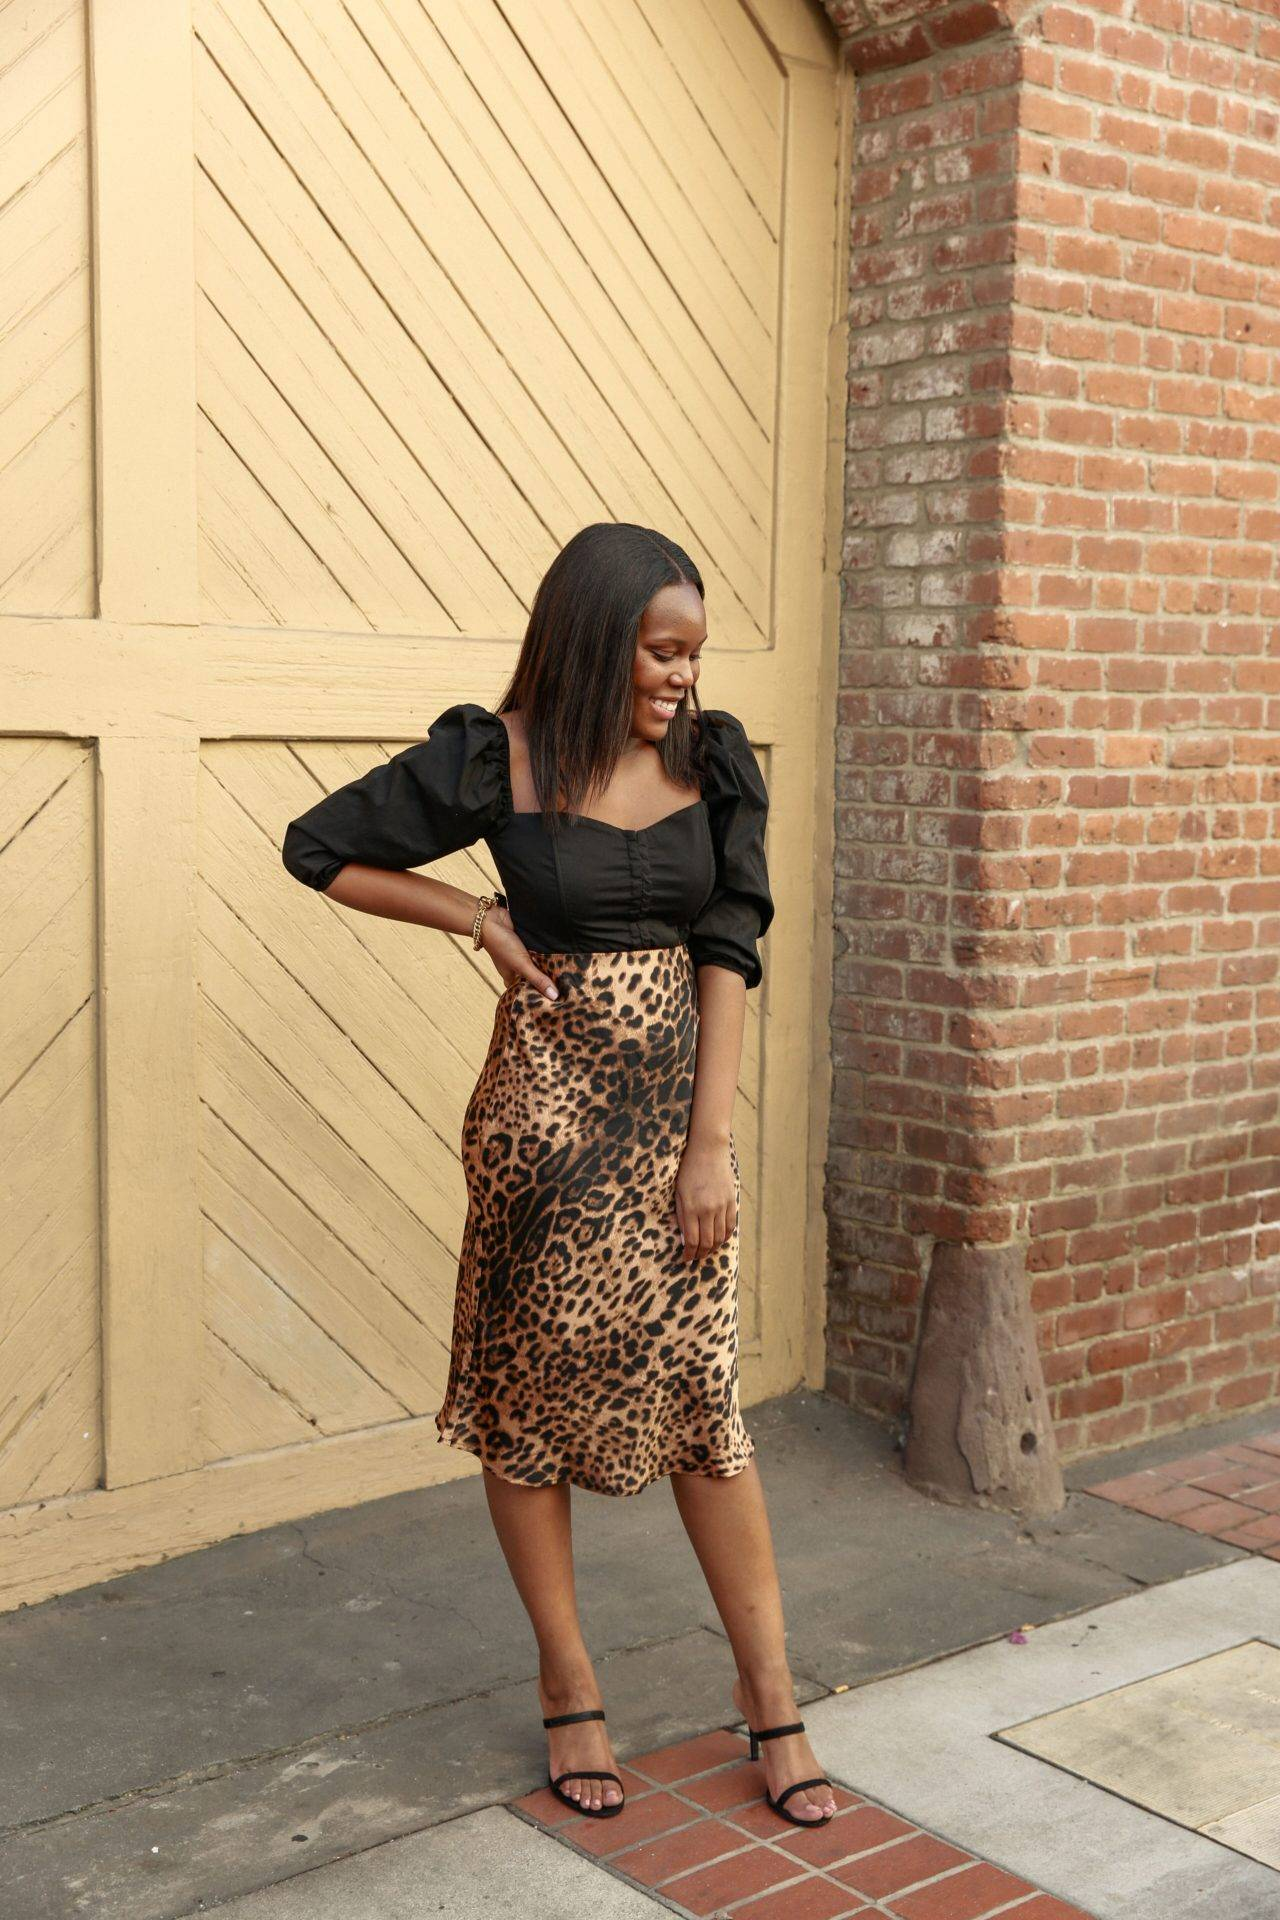 Satin Leopard Skirt - Le Fab Chic